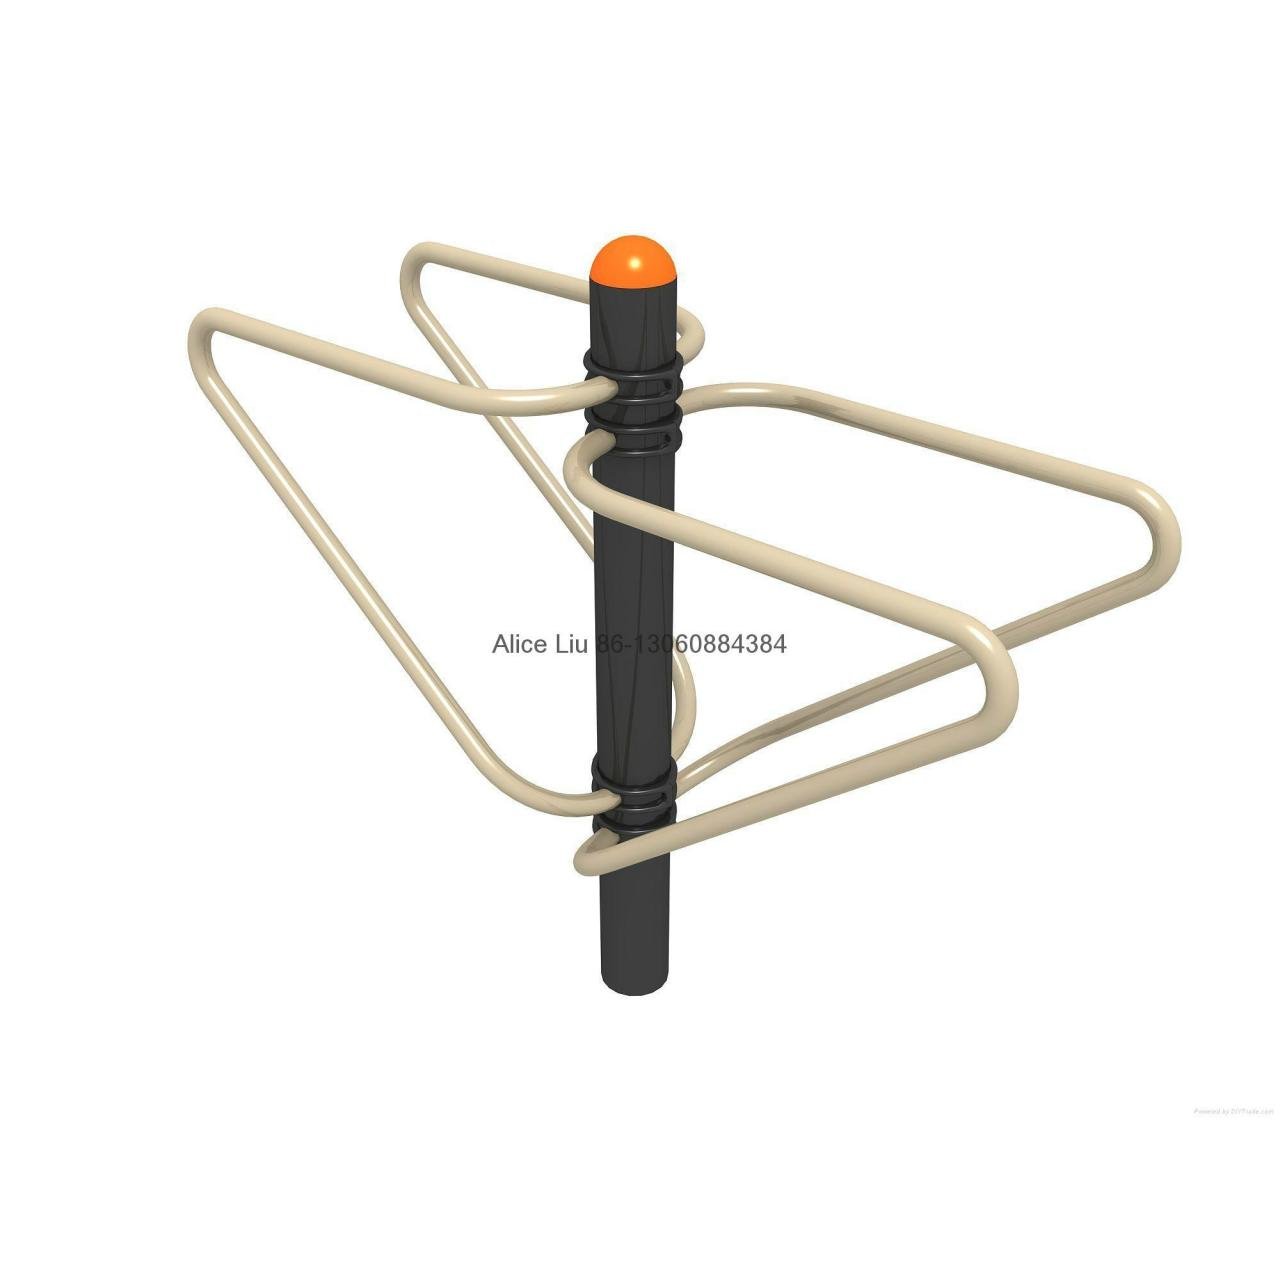 Parallel bars outdoor fitness equipment outdoor exercise equipment for adults